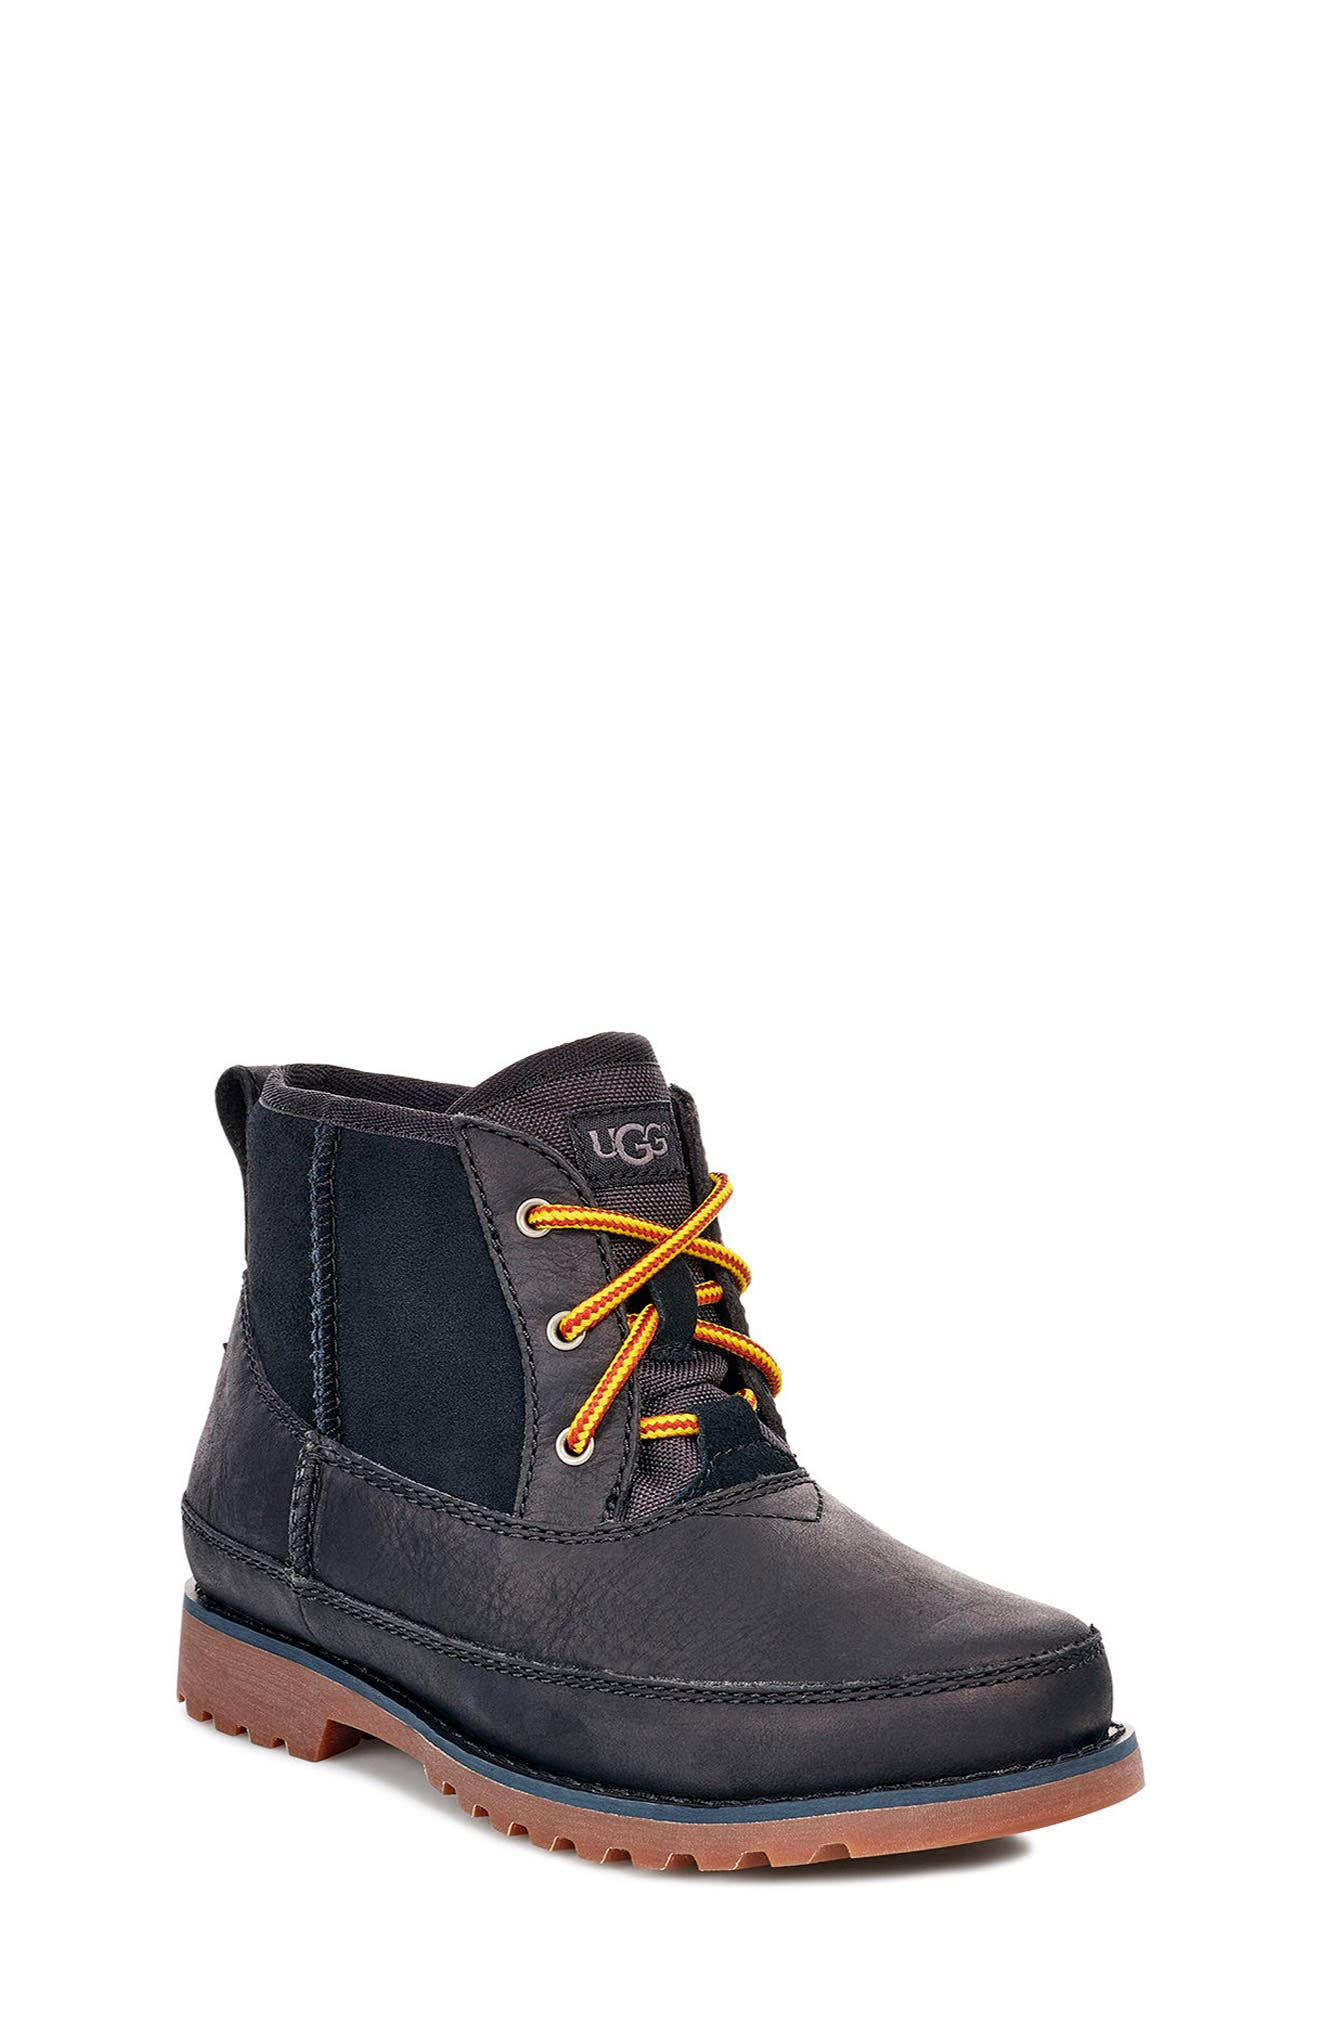 UGG<SUP>®</SUP> Bradley Waterproof Boot, Main, color, BLACK